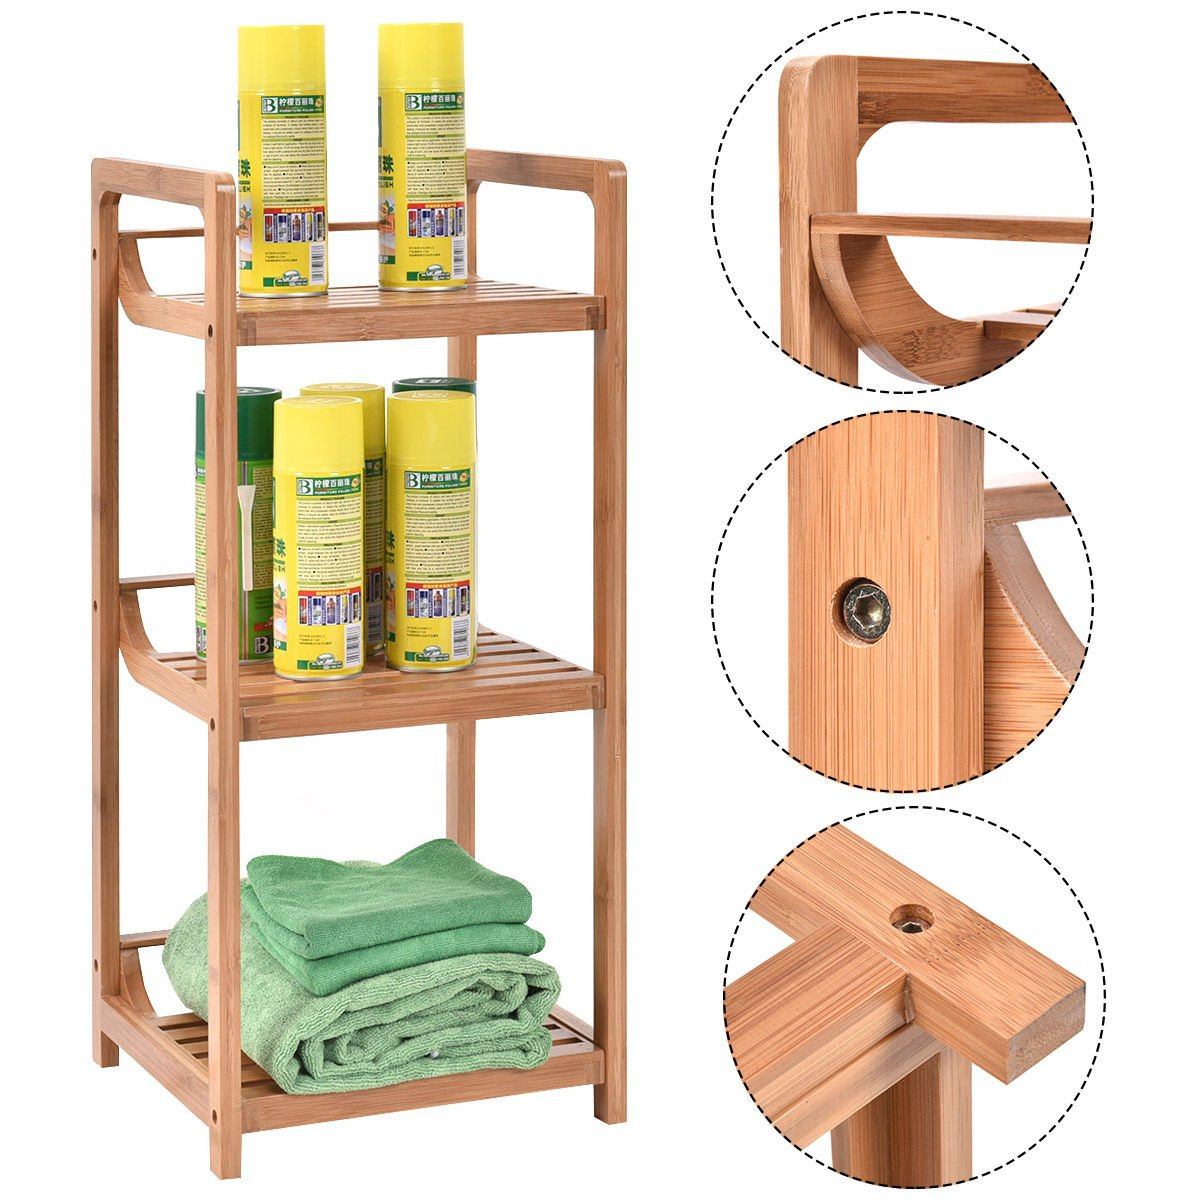 full unit size ragrund bamboo tier grund corner of shelf r designs home bathroom